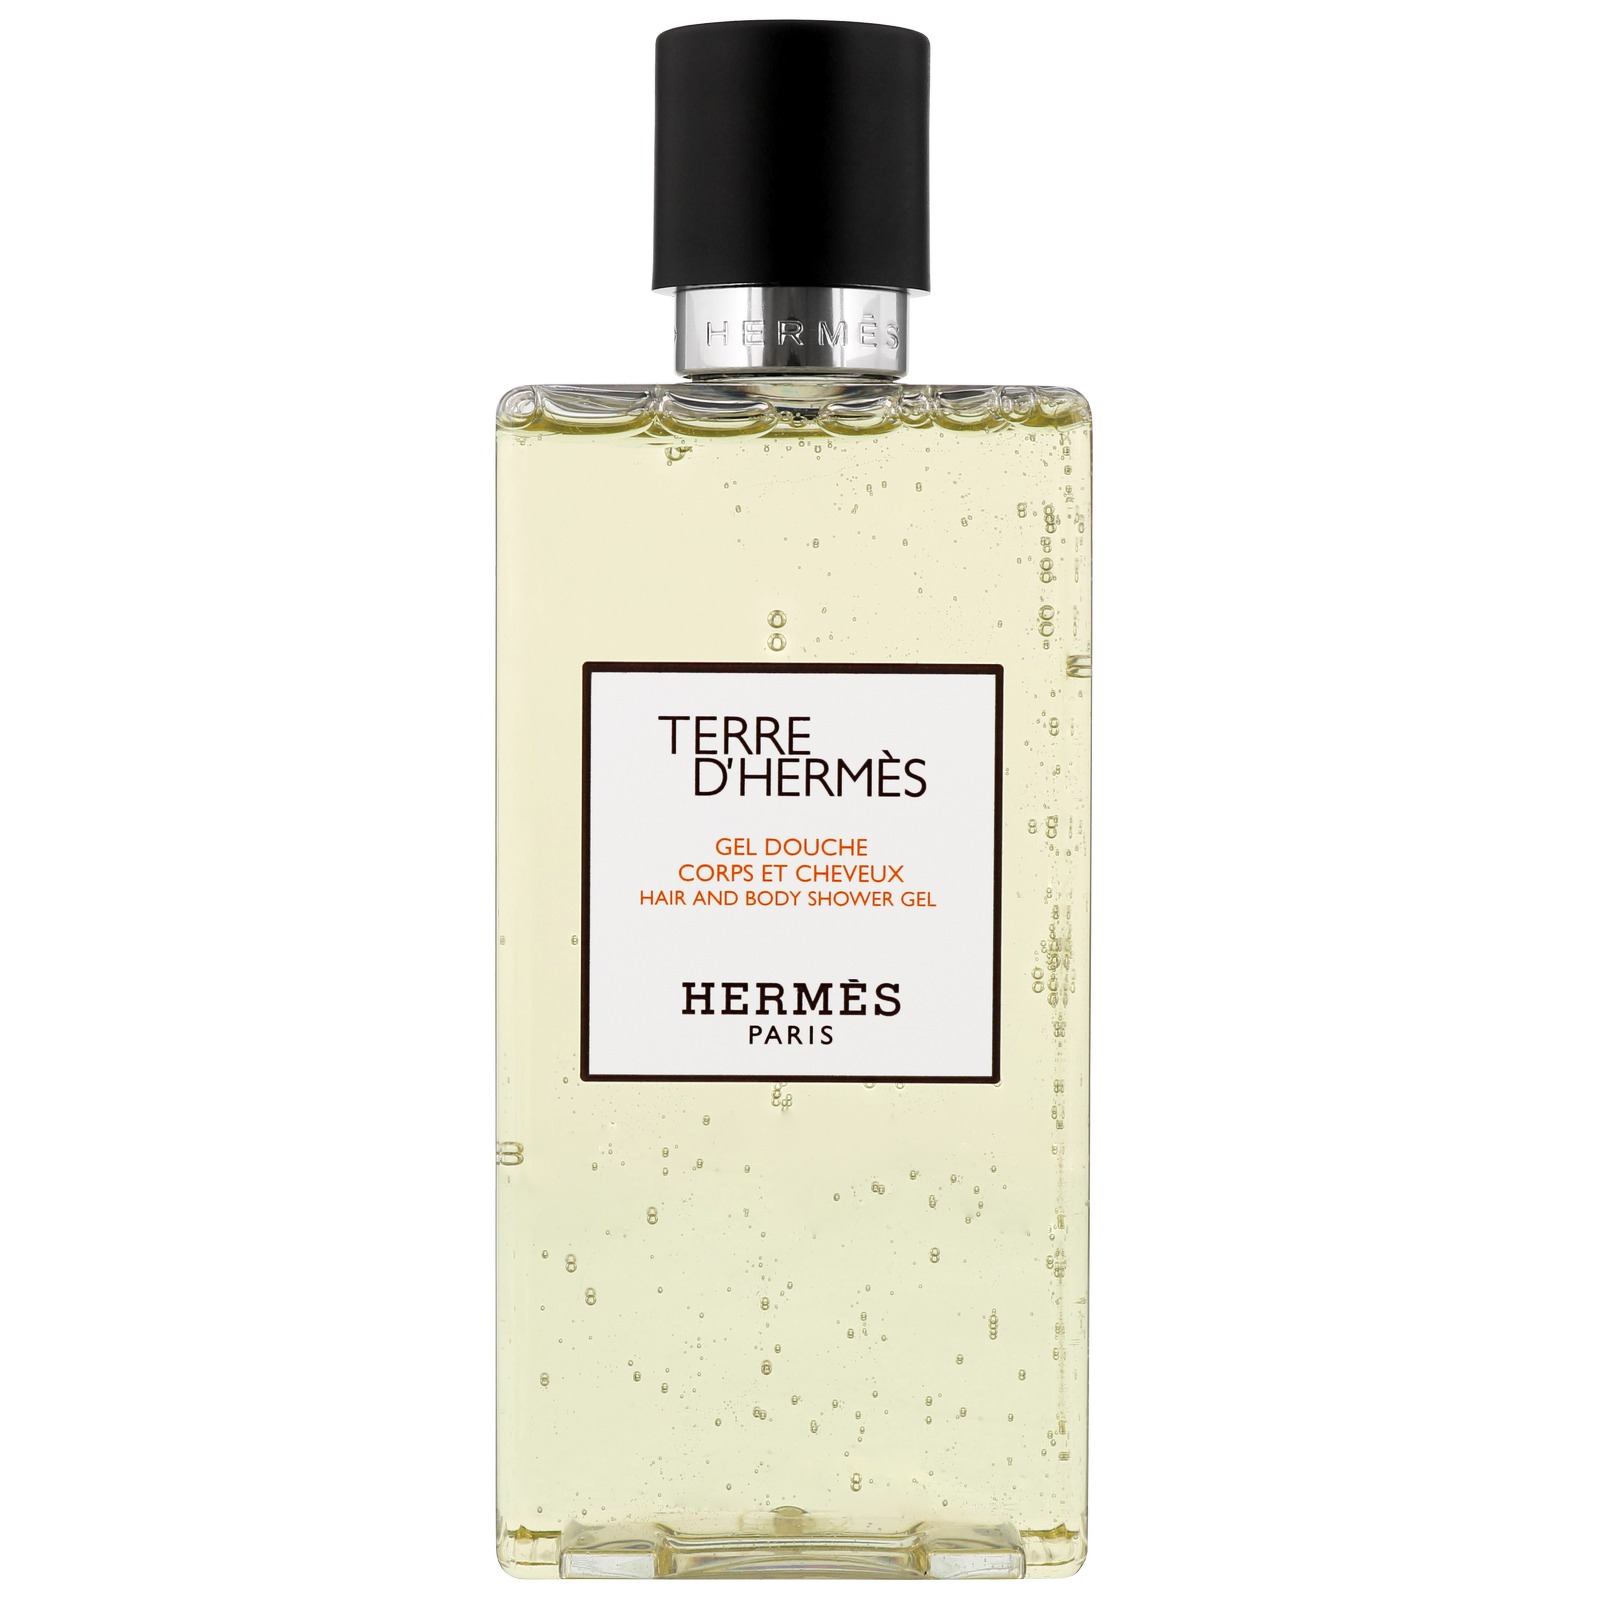 Hermes Terre D'Hermes Hair and Body Shower Gel 200ml